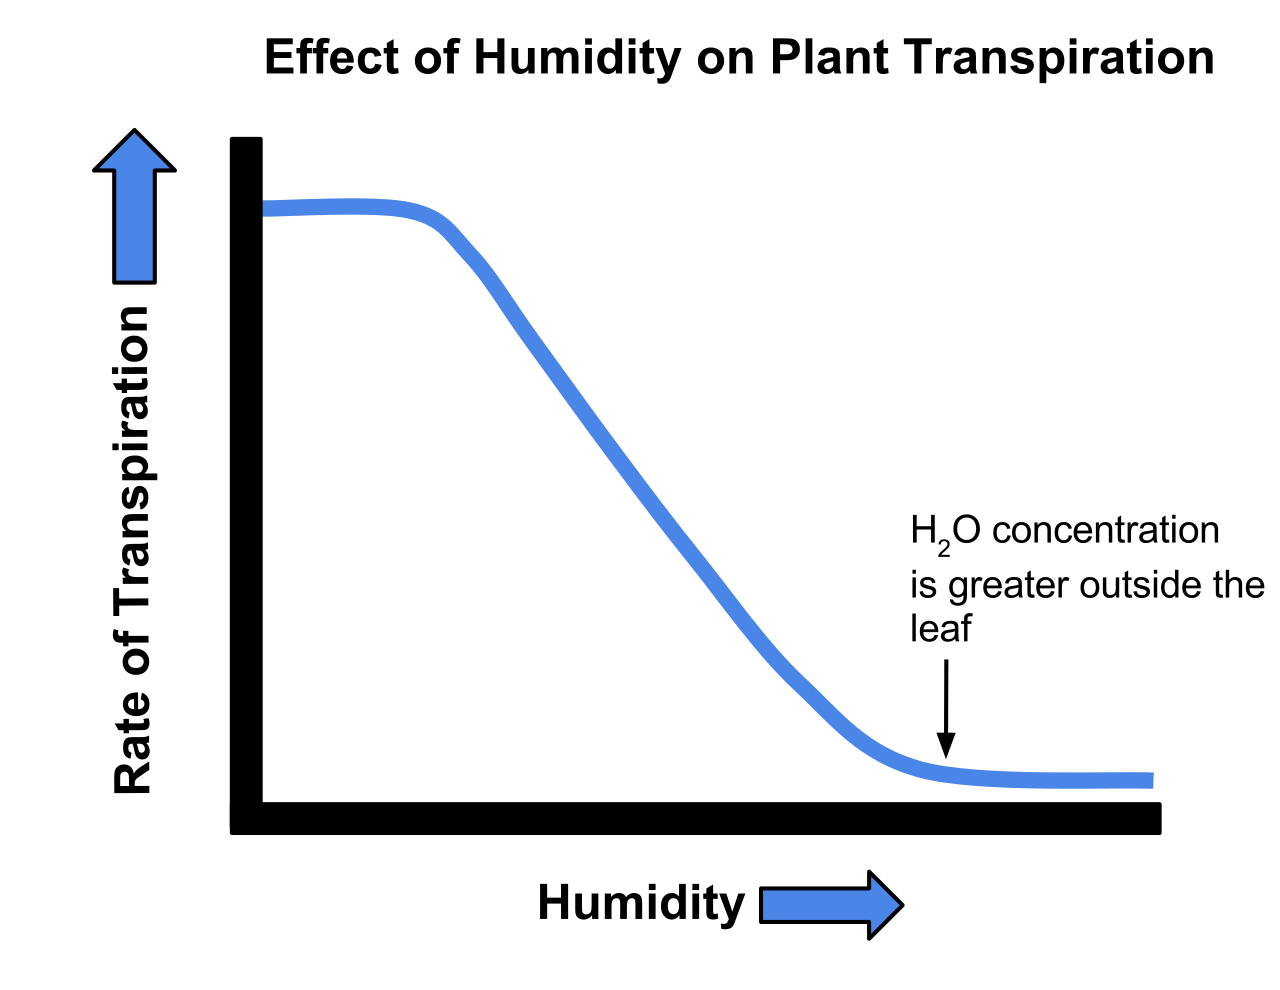 Svg graph growth. Biochemistry effect of transpiration